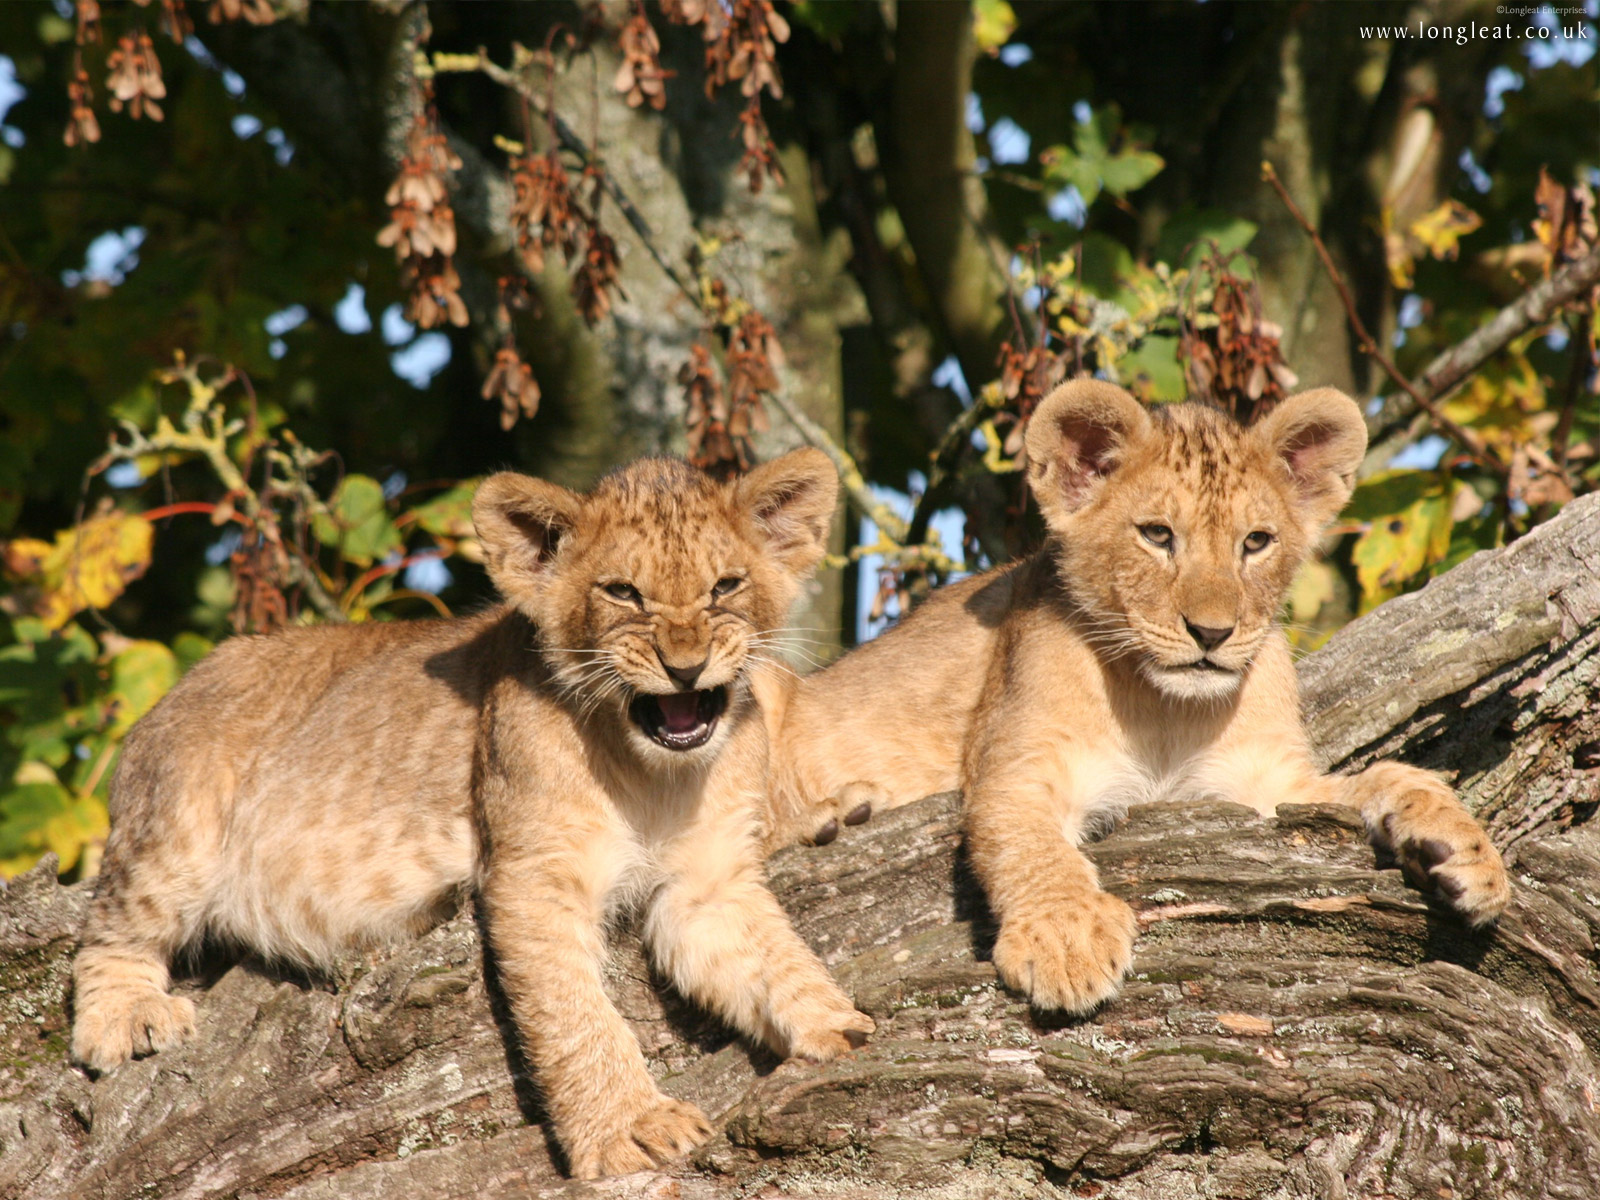 lion cubs cute baby lion cubs cute baby lion cubs lion cubs baby lion 1600x1200